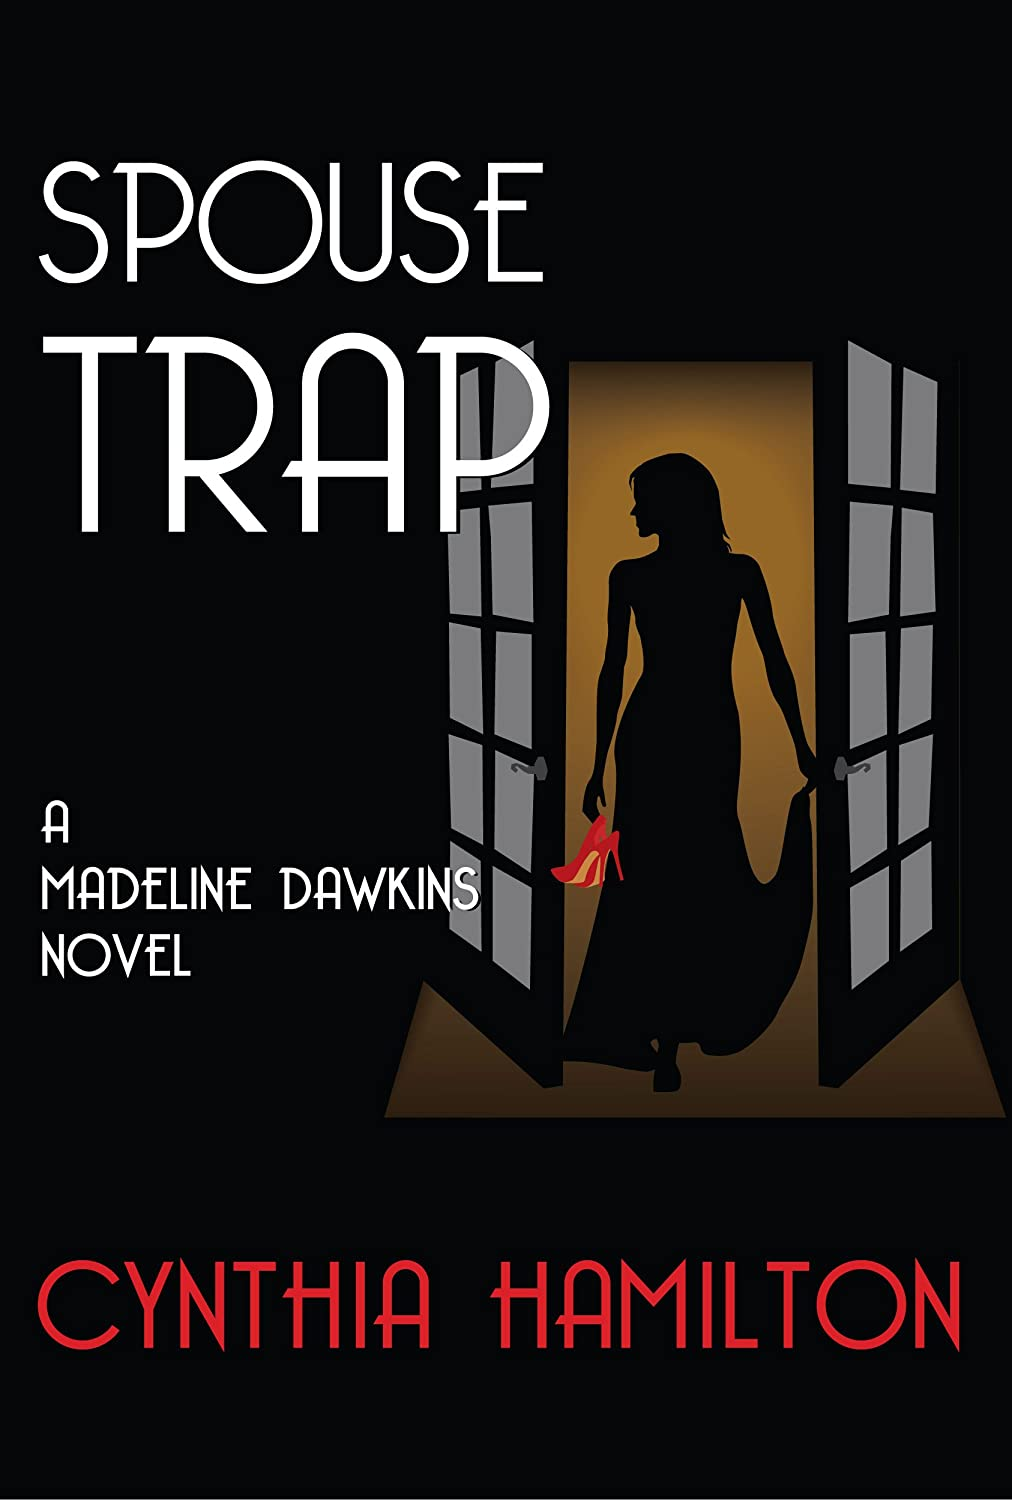 Spouse Trap (A Madeline Dawkins Novel)